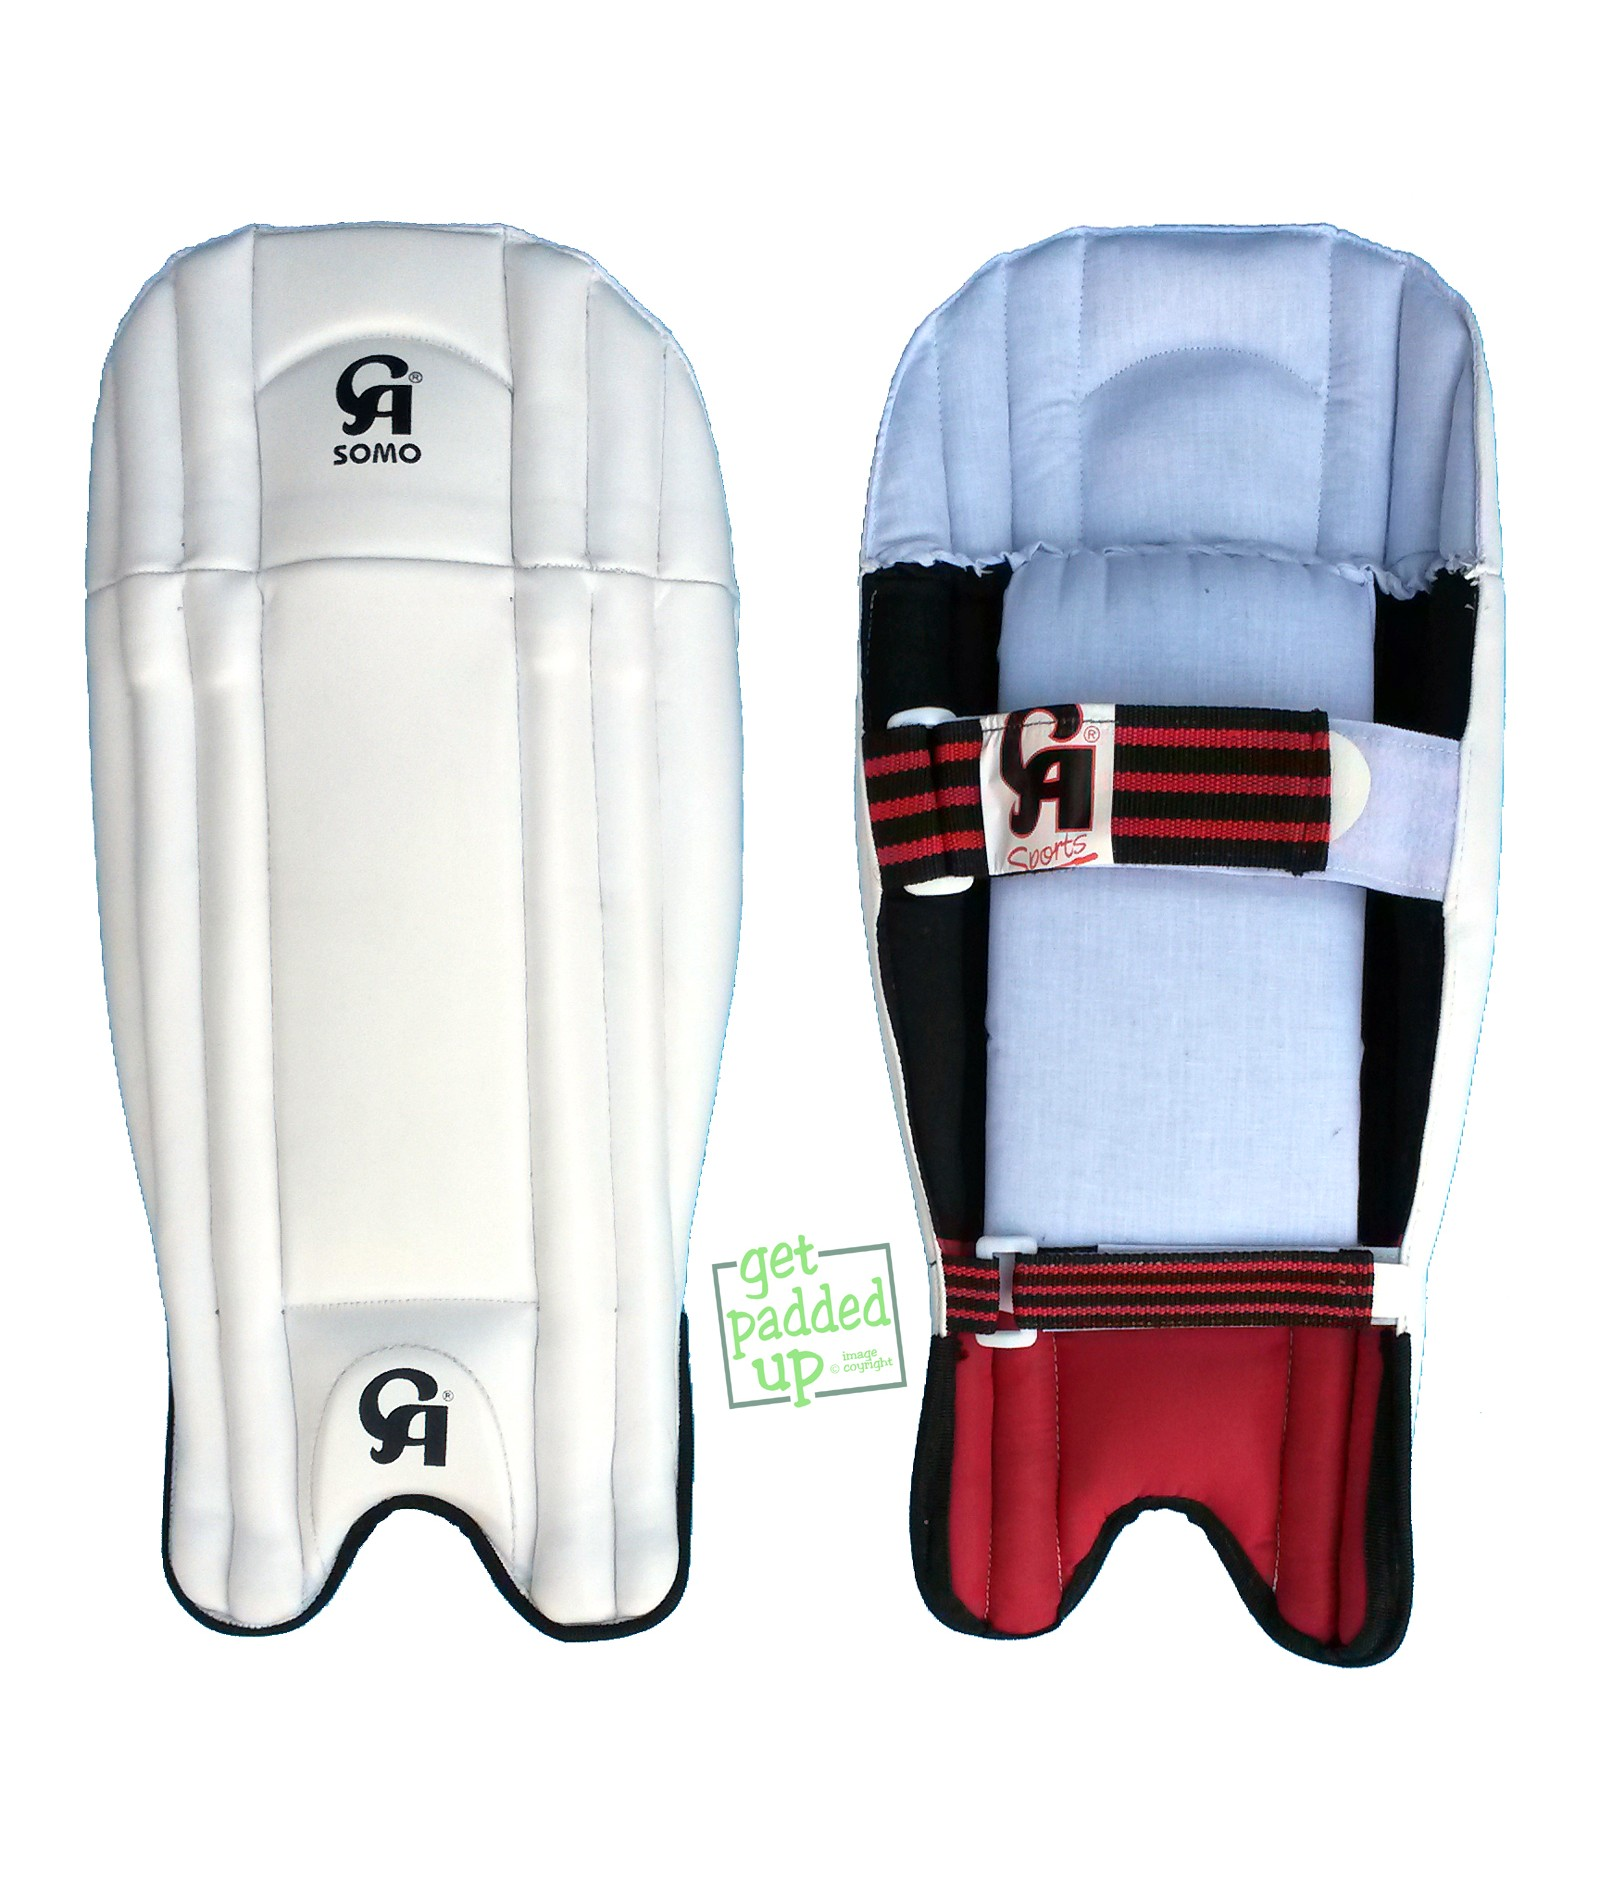 CA Sports Somo Cricket Wicket-Keeping Pads (Youth)